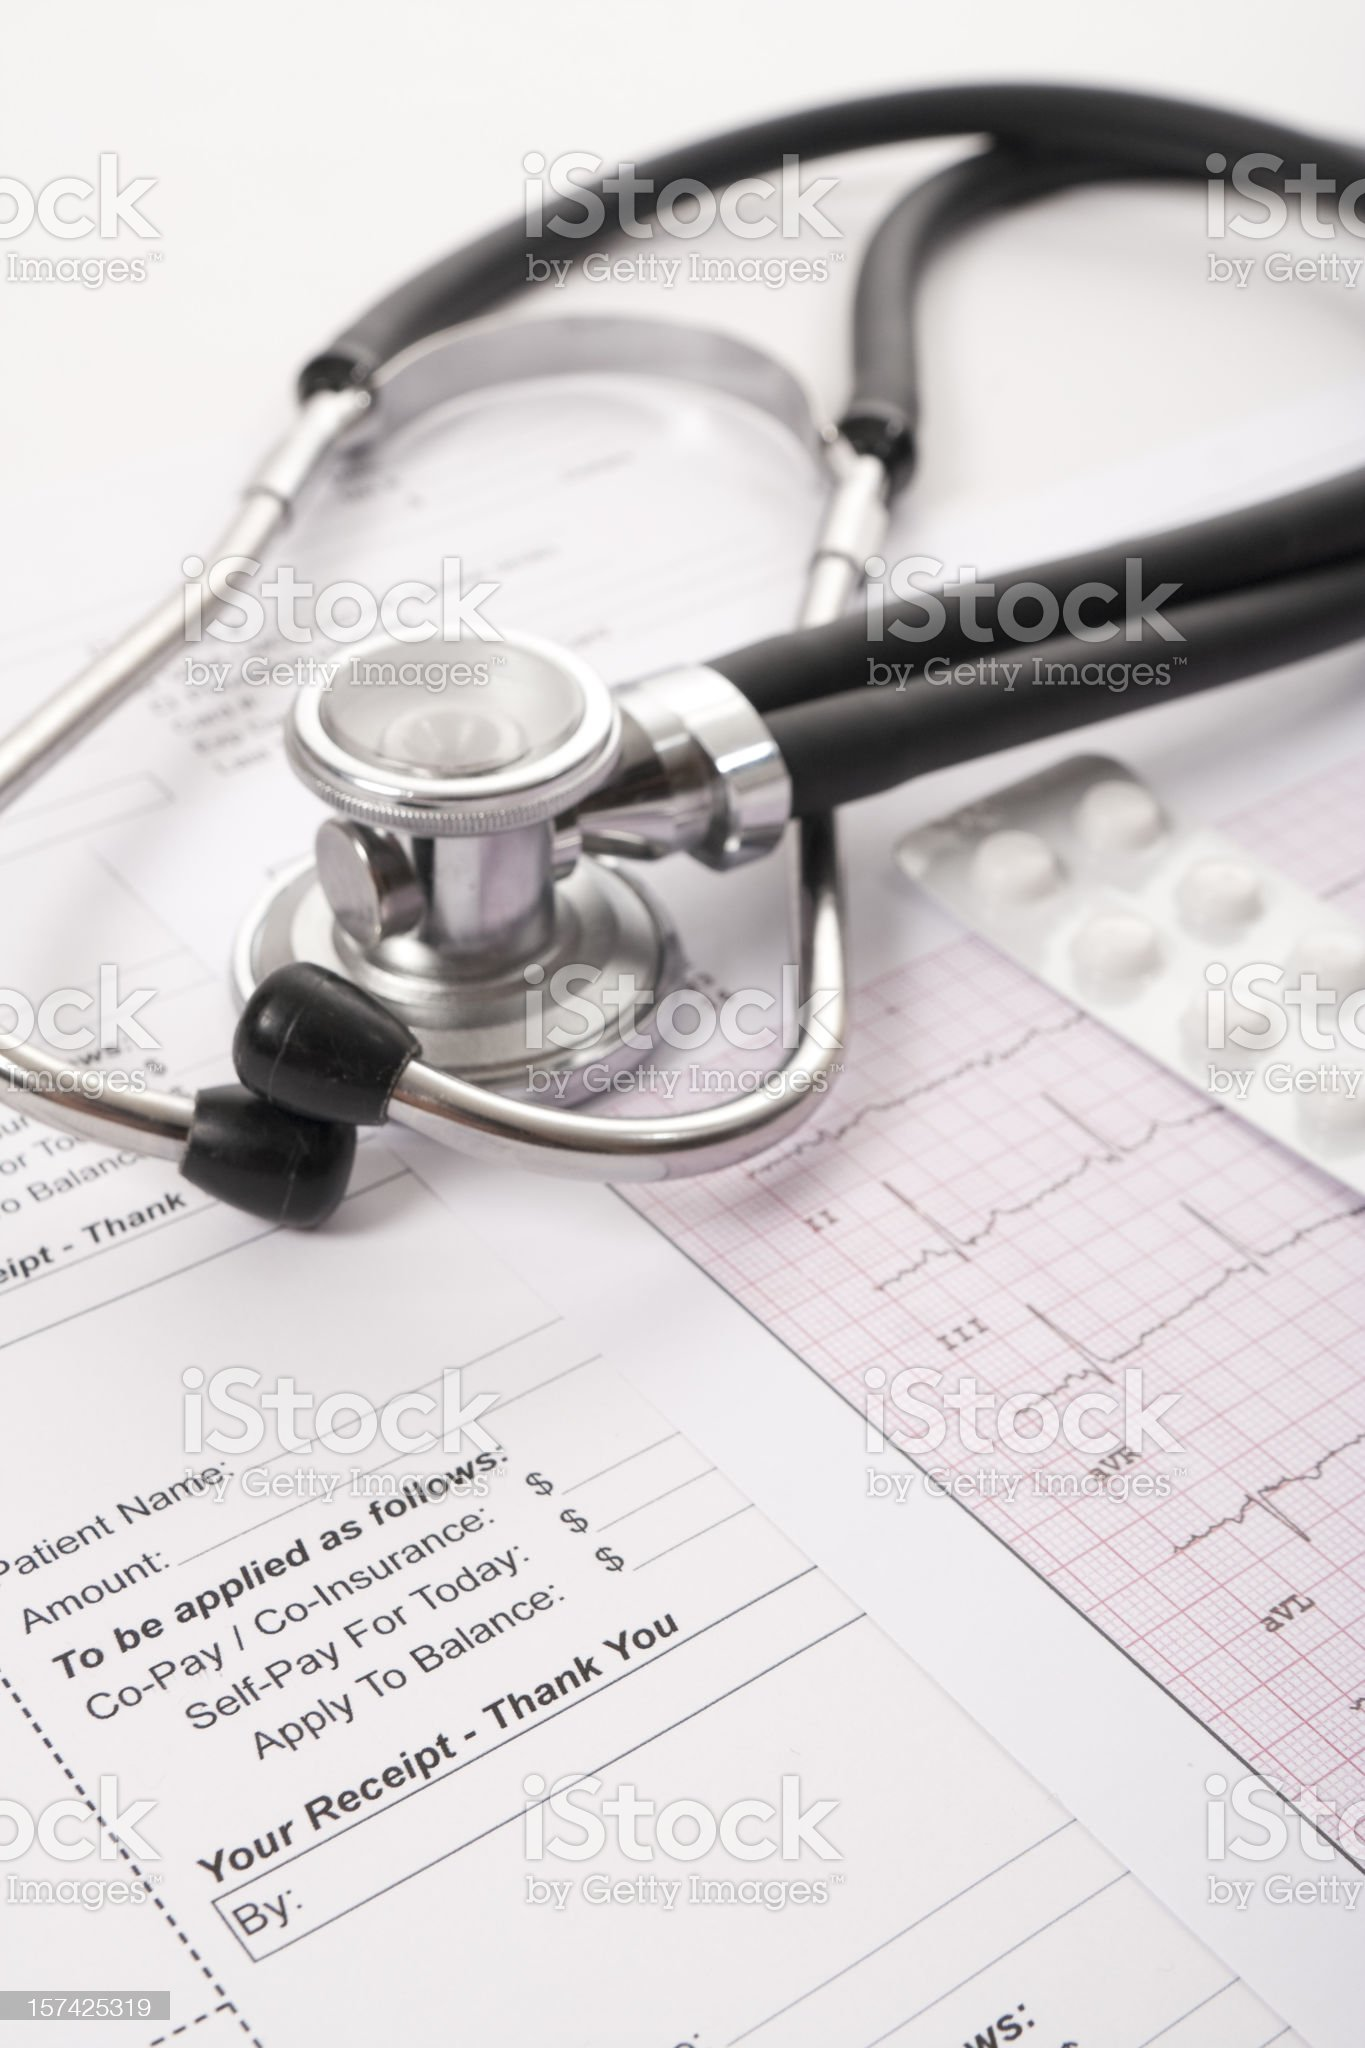 Sthetoscope, EKG, pilss and client receipt royalty-free stock photo